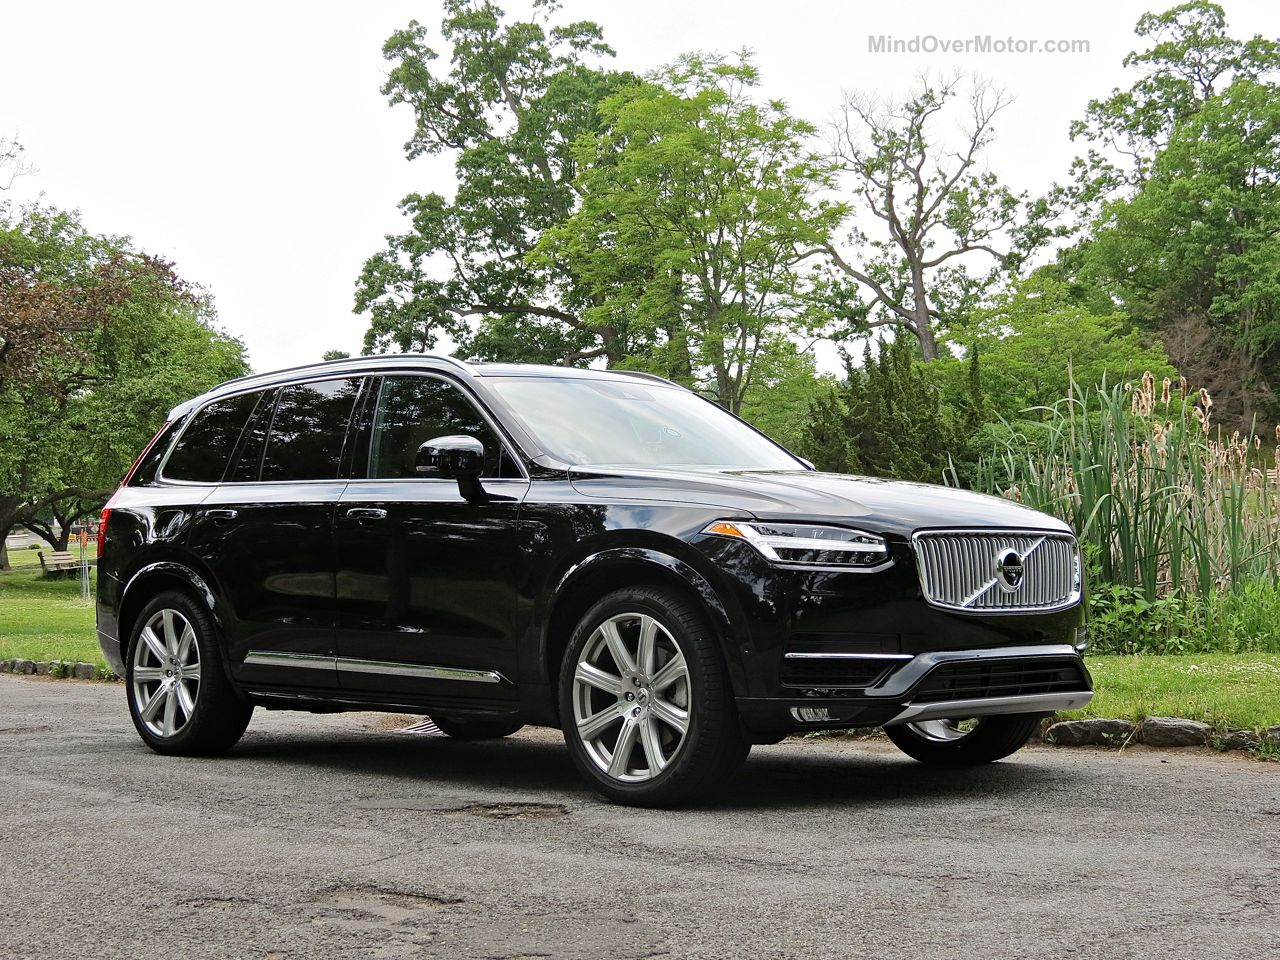 2016 Volvo XC90 Review: Tell The World You've Made Babies In Style ...